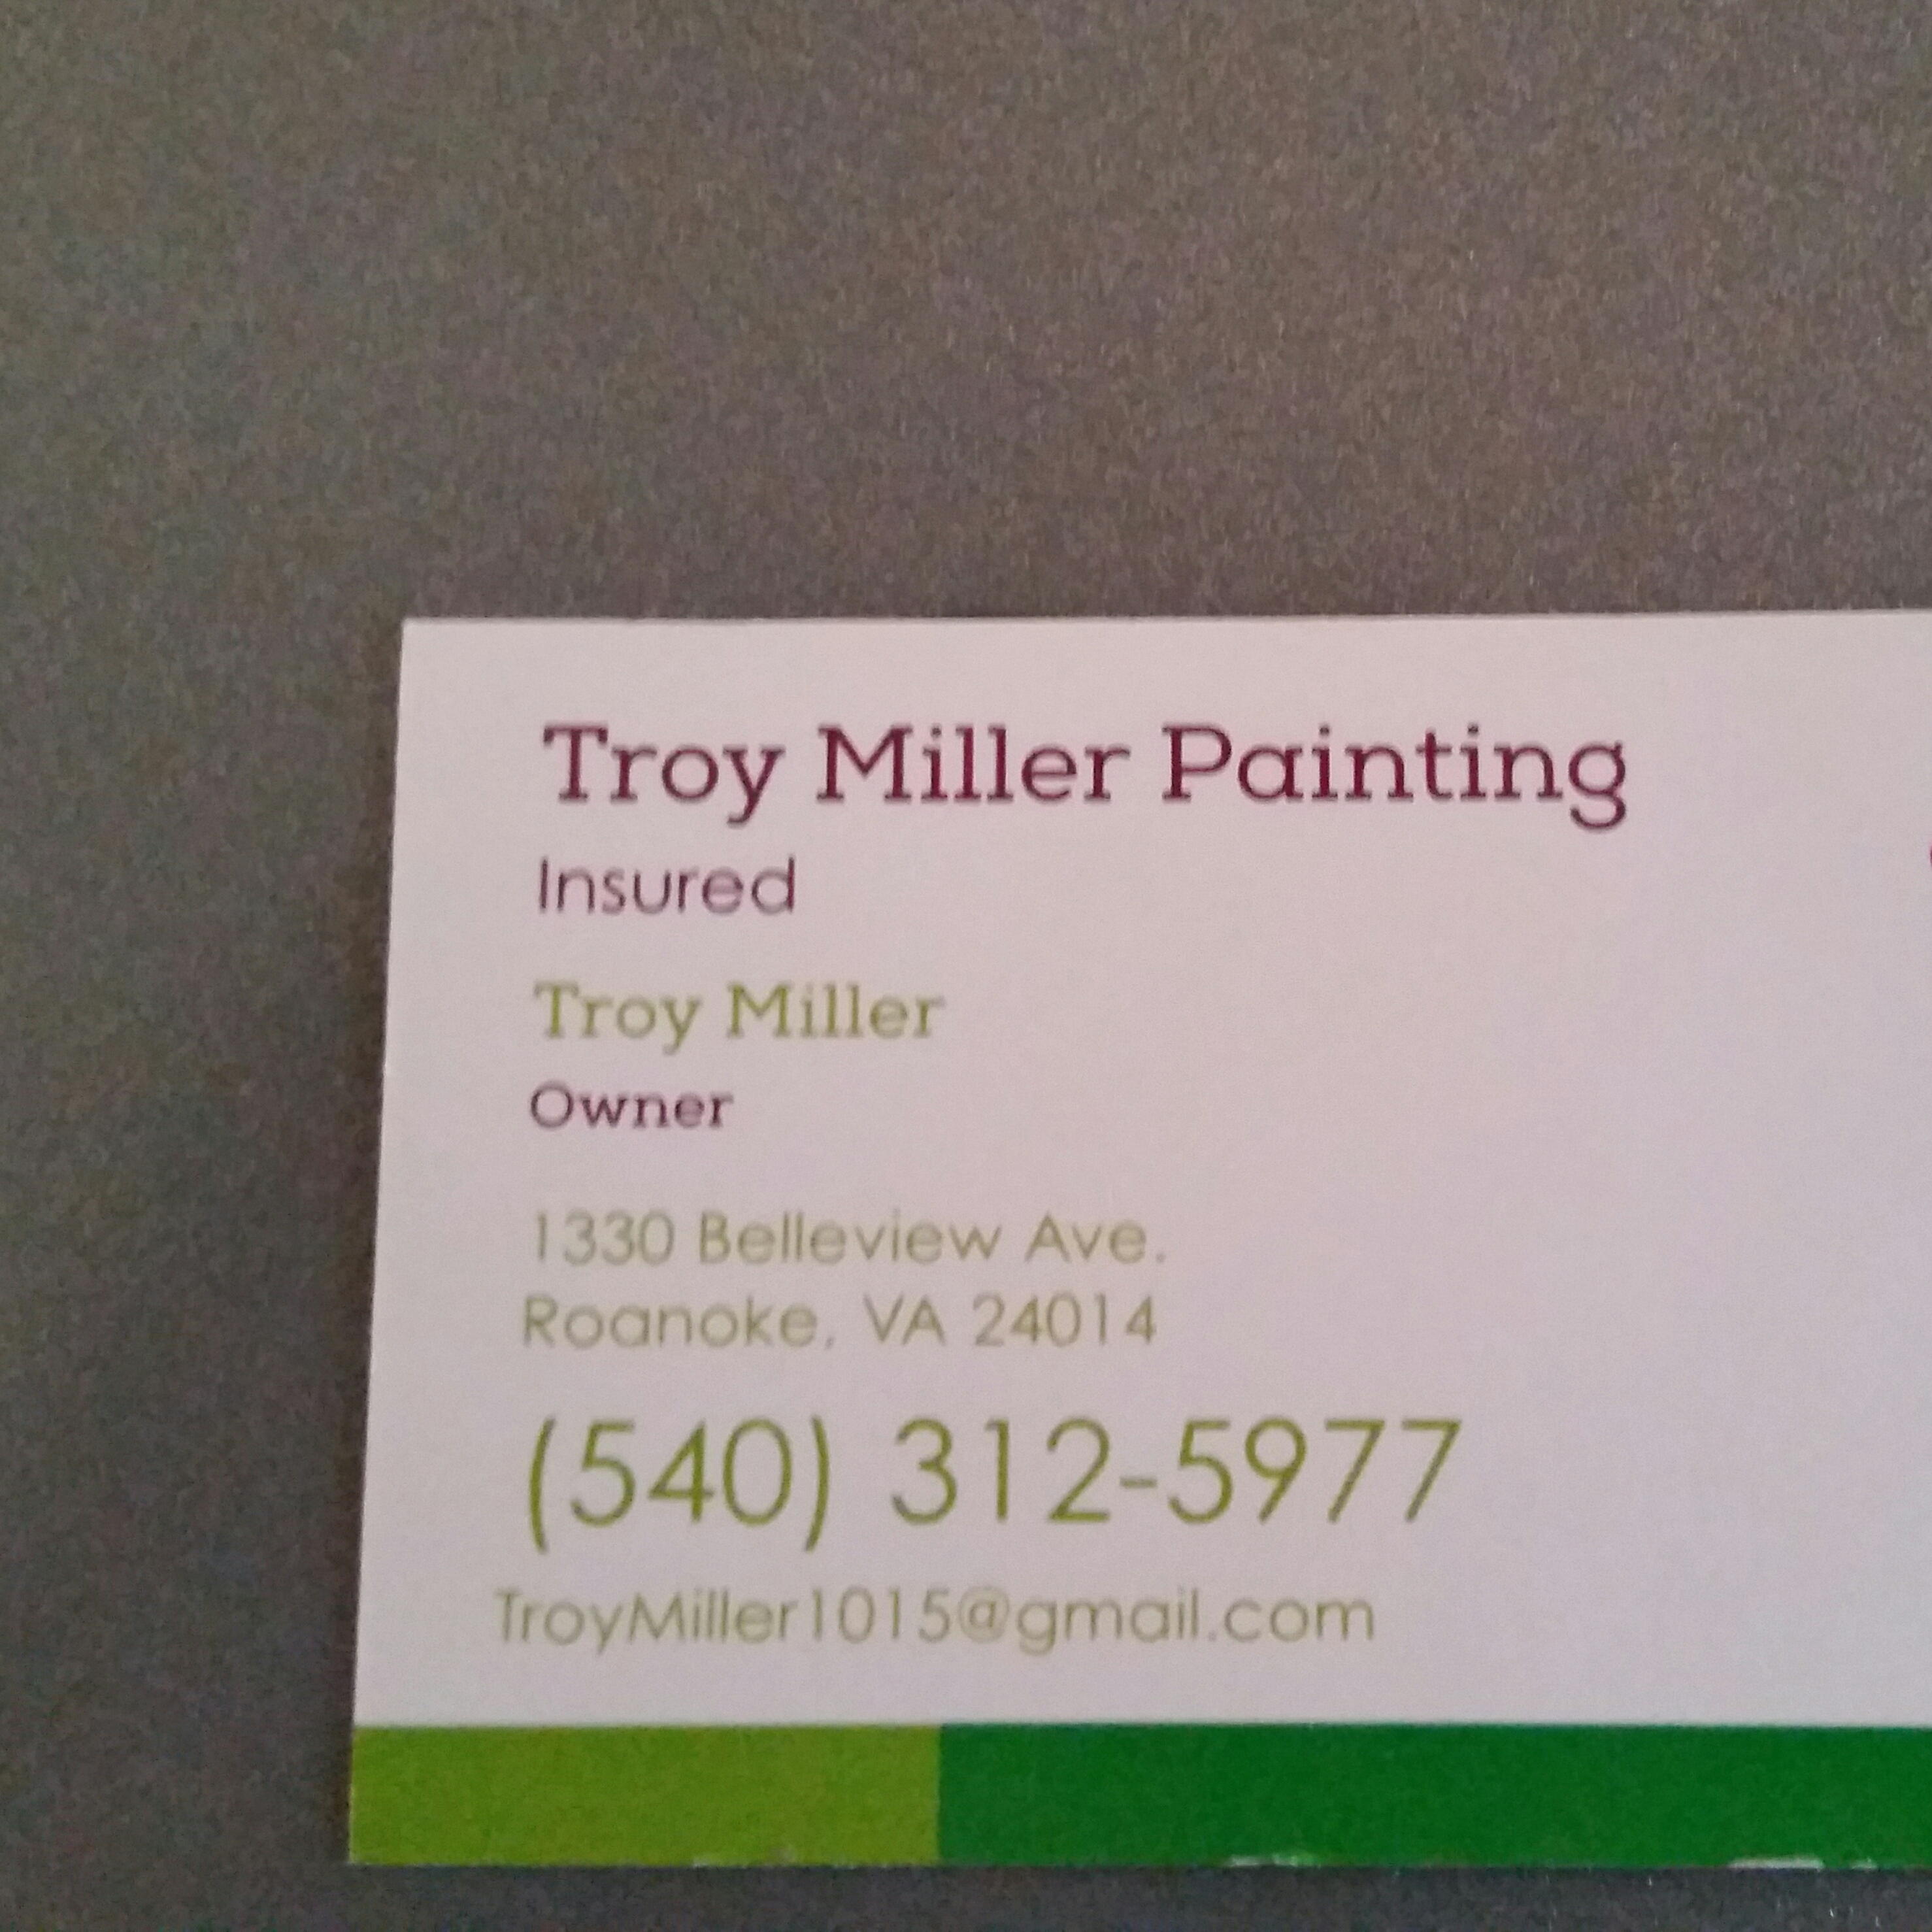 Troy Miller Painting logo